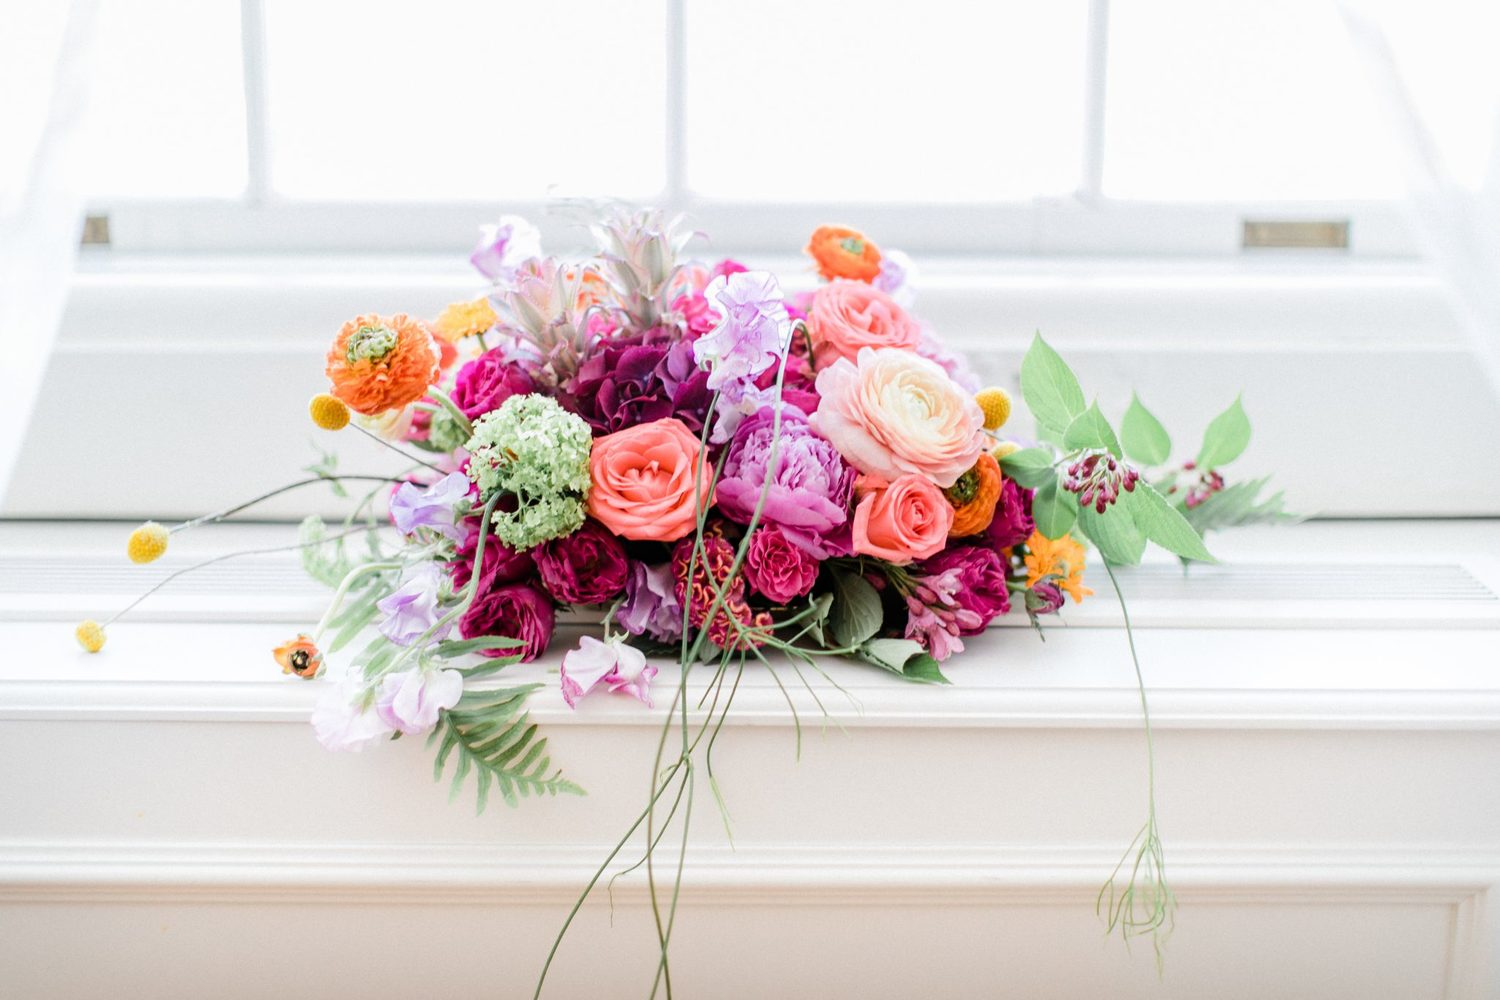 beautiful colourful floral wedding decoration, wunderschön farbenfrohe blumendekoration